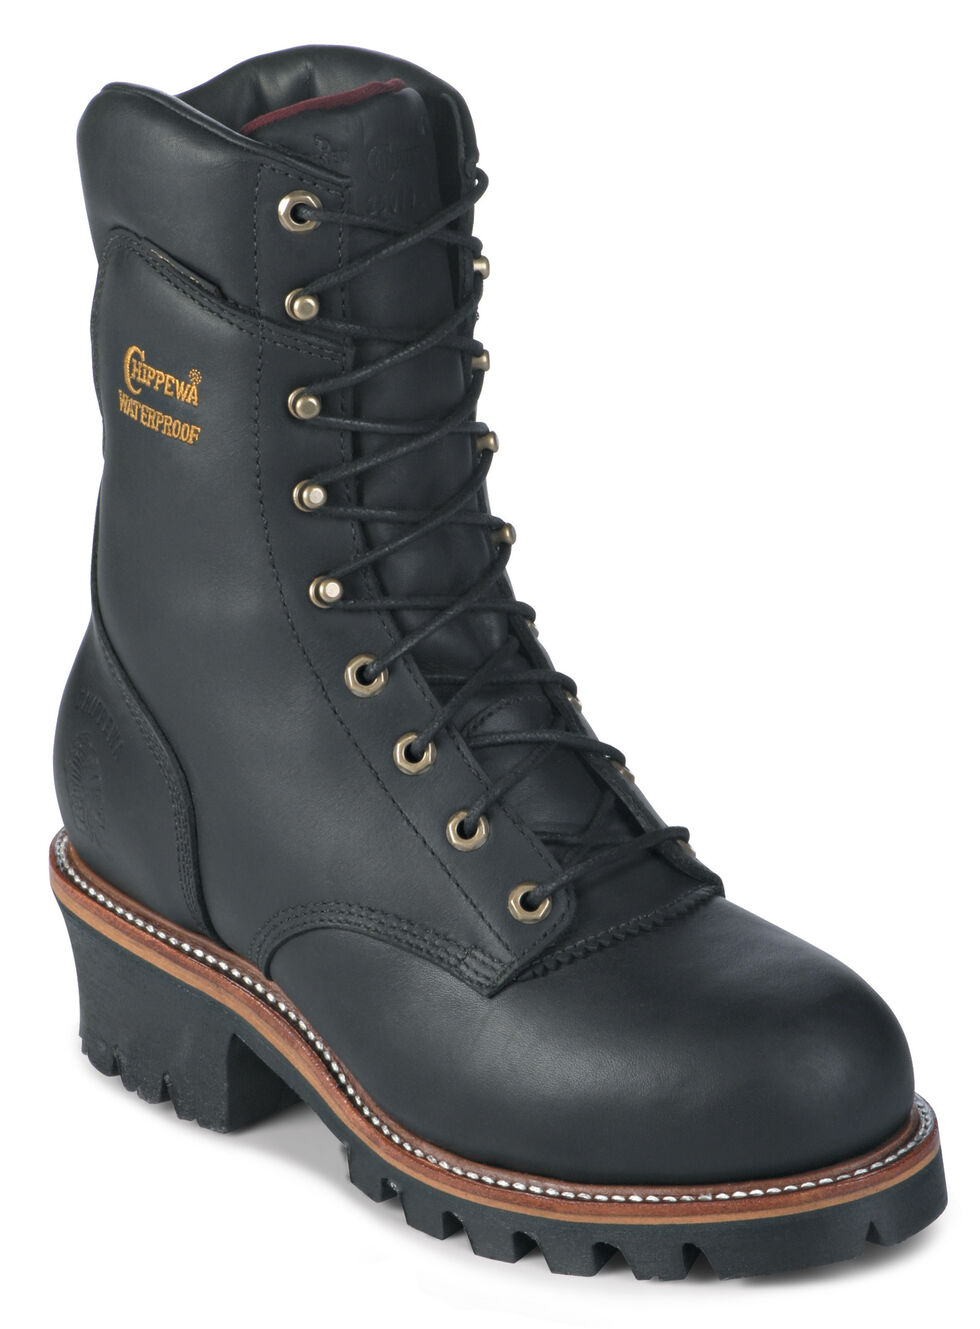 """Chippewa Waterproof Insulated Super 9"""" Logger Work Boots - Round Toe, Black, hi-res"""